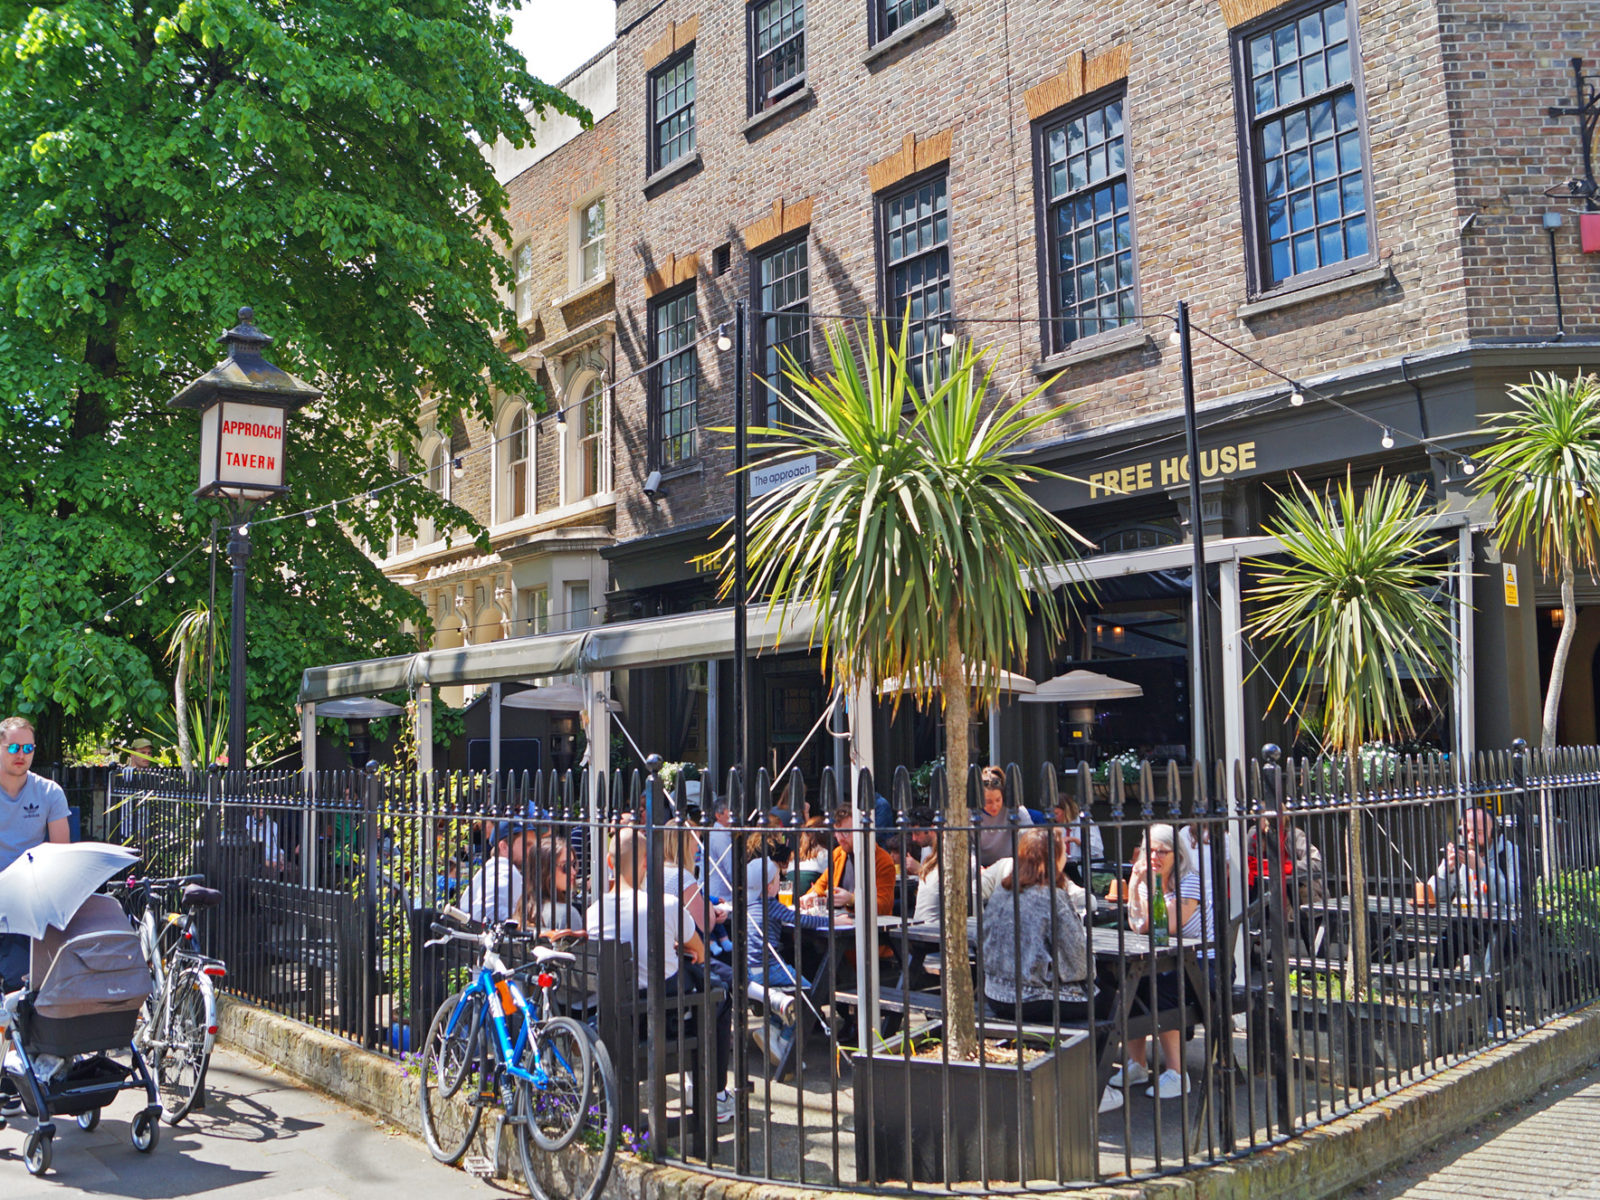 A busy Sunday in our beer garden